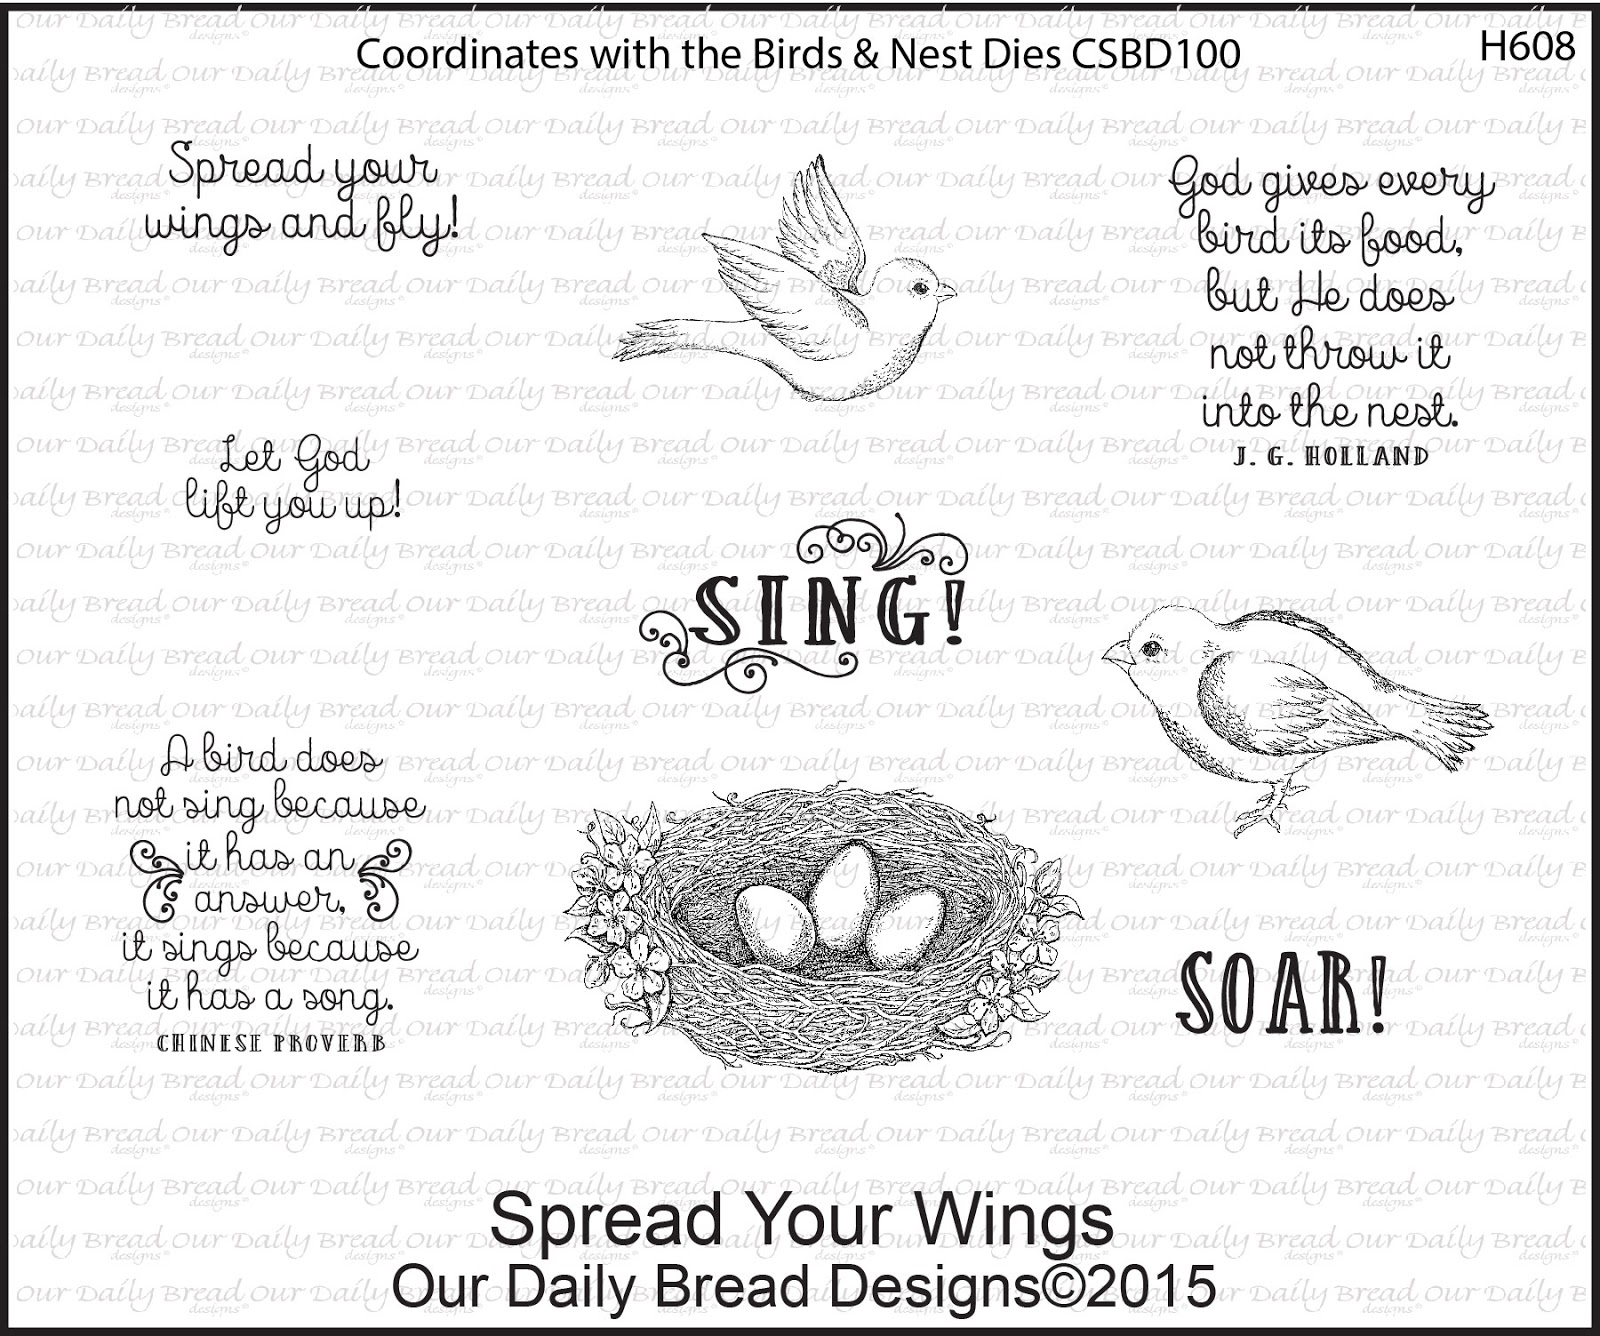 Stamps - Our Daily Bread Designs Spread Your Wings